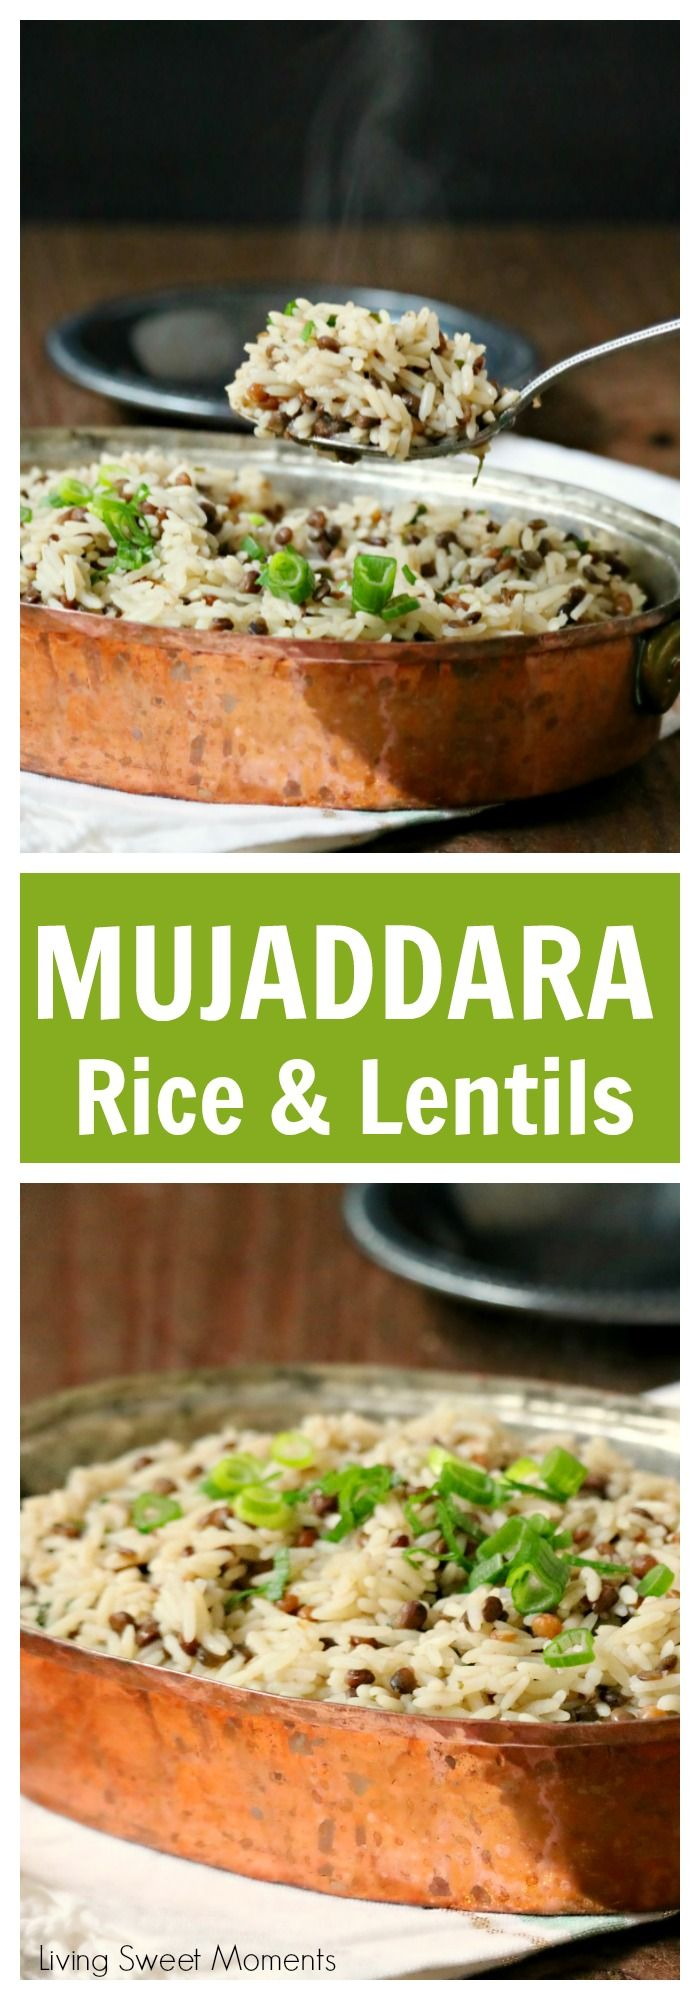 This delicious Mujaddara recipe is an entree made with rice, lentils and rich spices for an easy middle eastern dish that will wow your family for dinner. #ad #SaboreaTuVerano